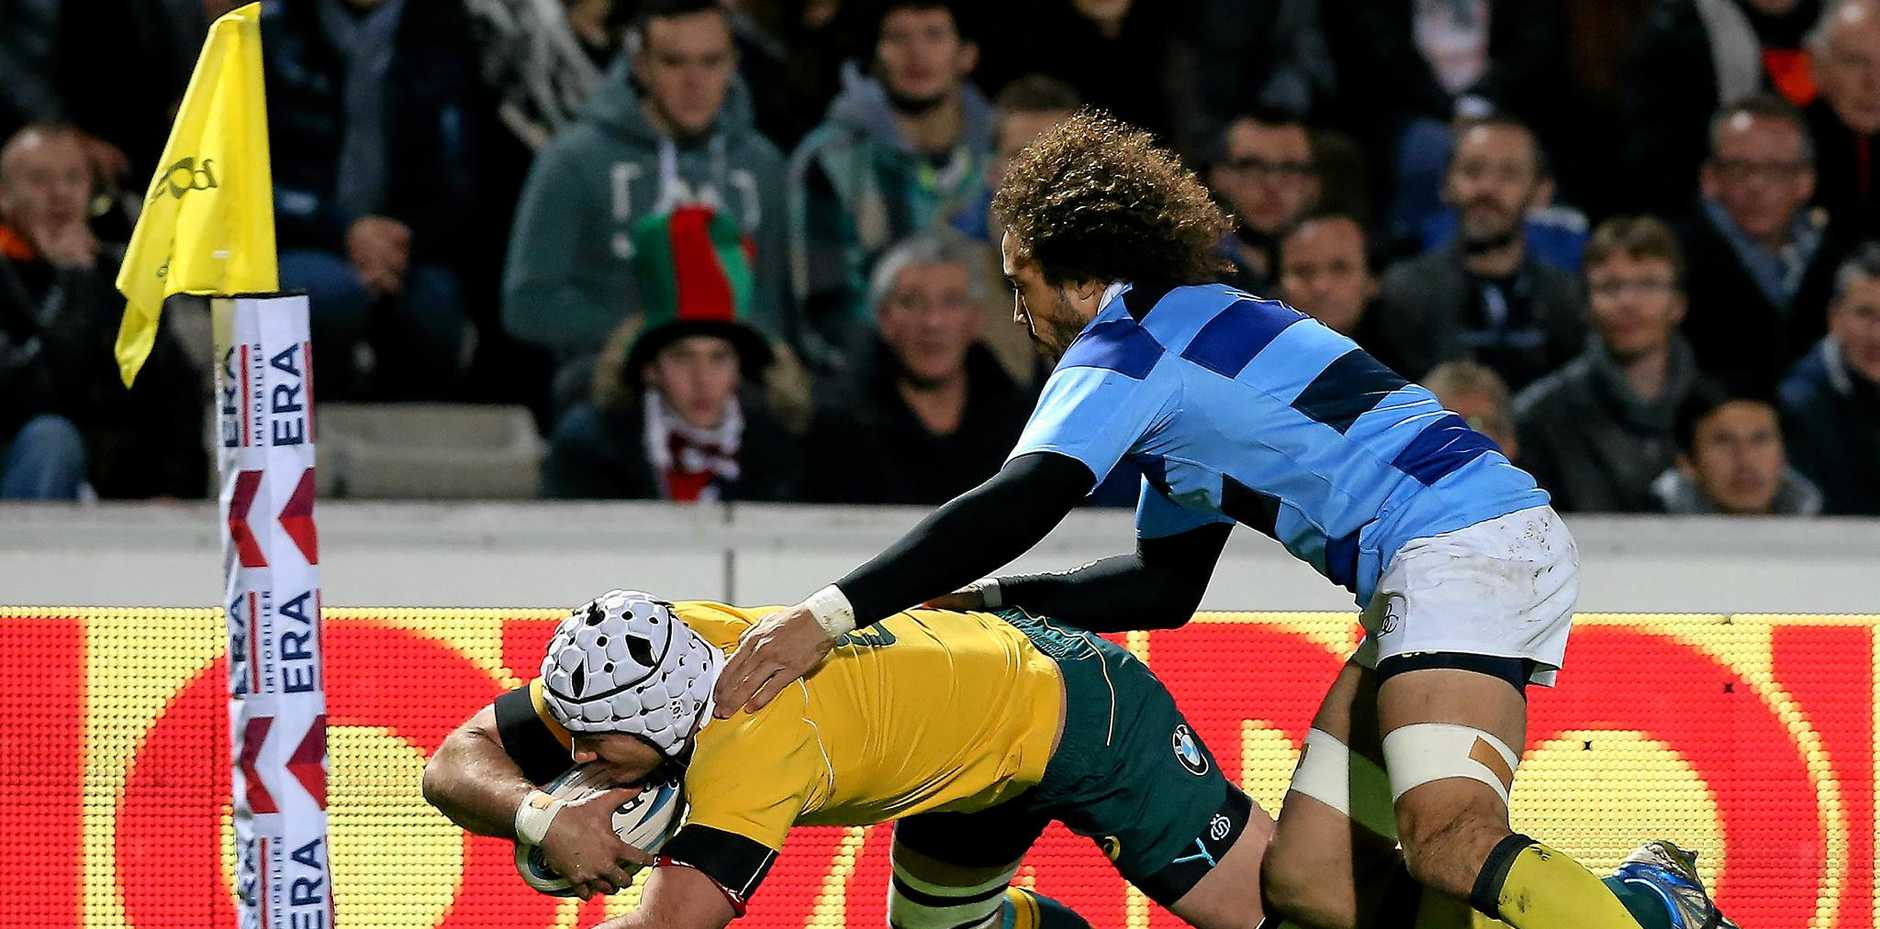 Ben Mowen of Australia scores a try against the French Barbarians in Bordeaux.